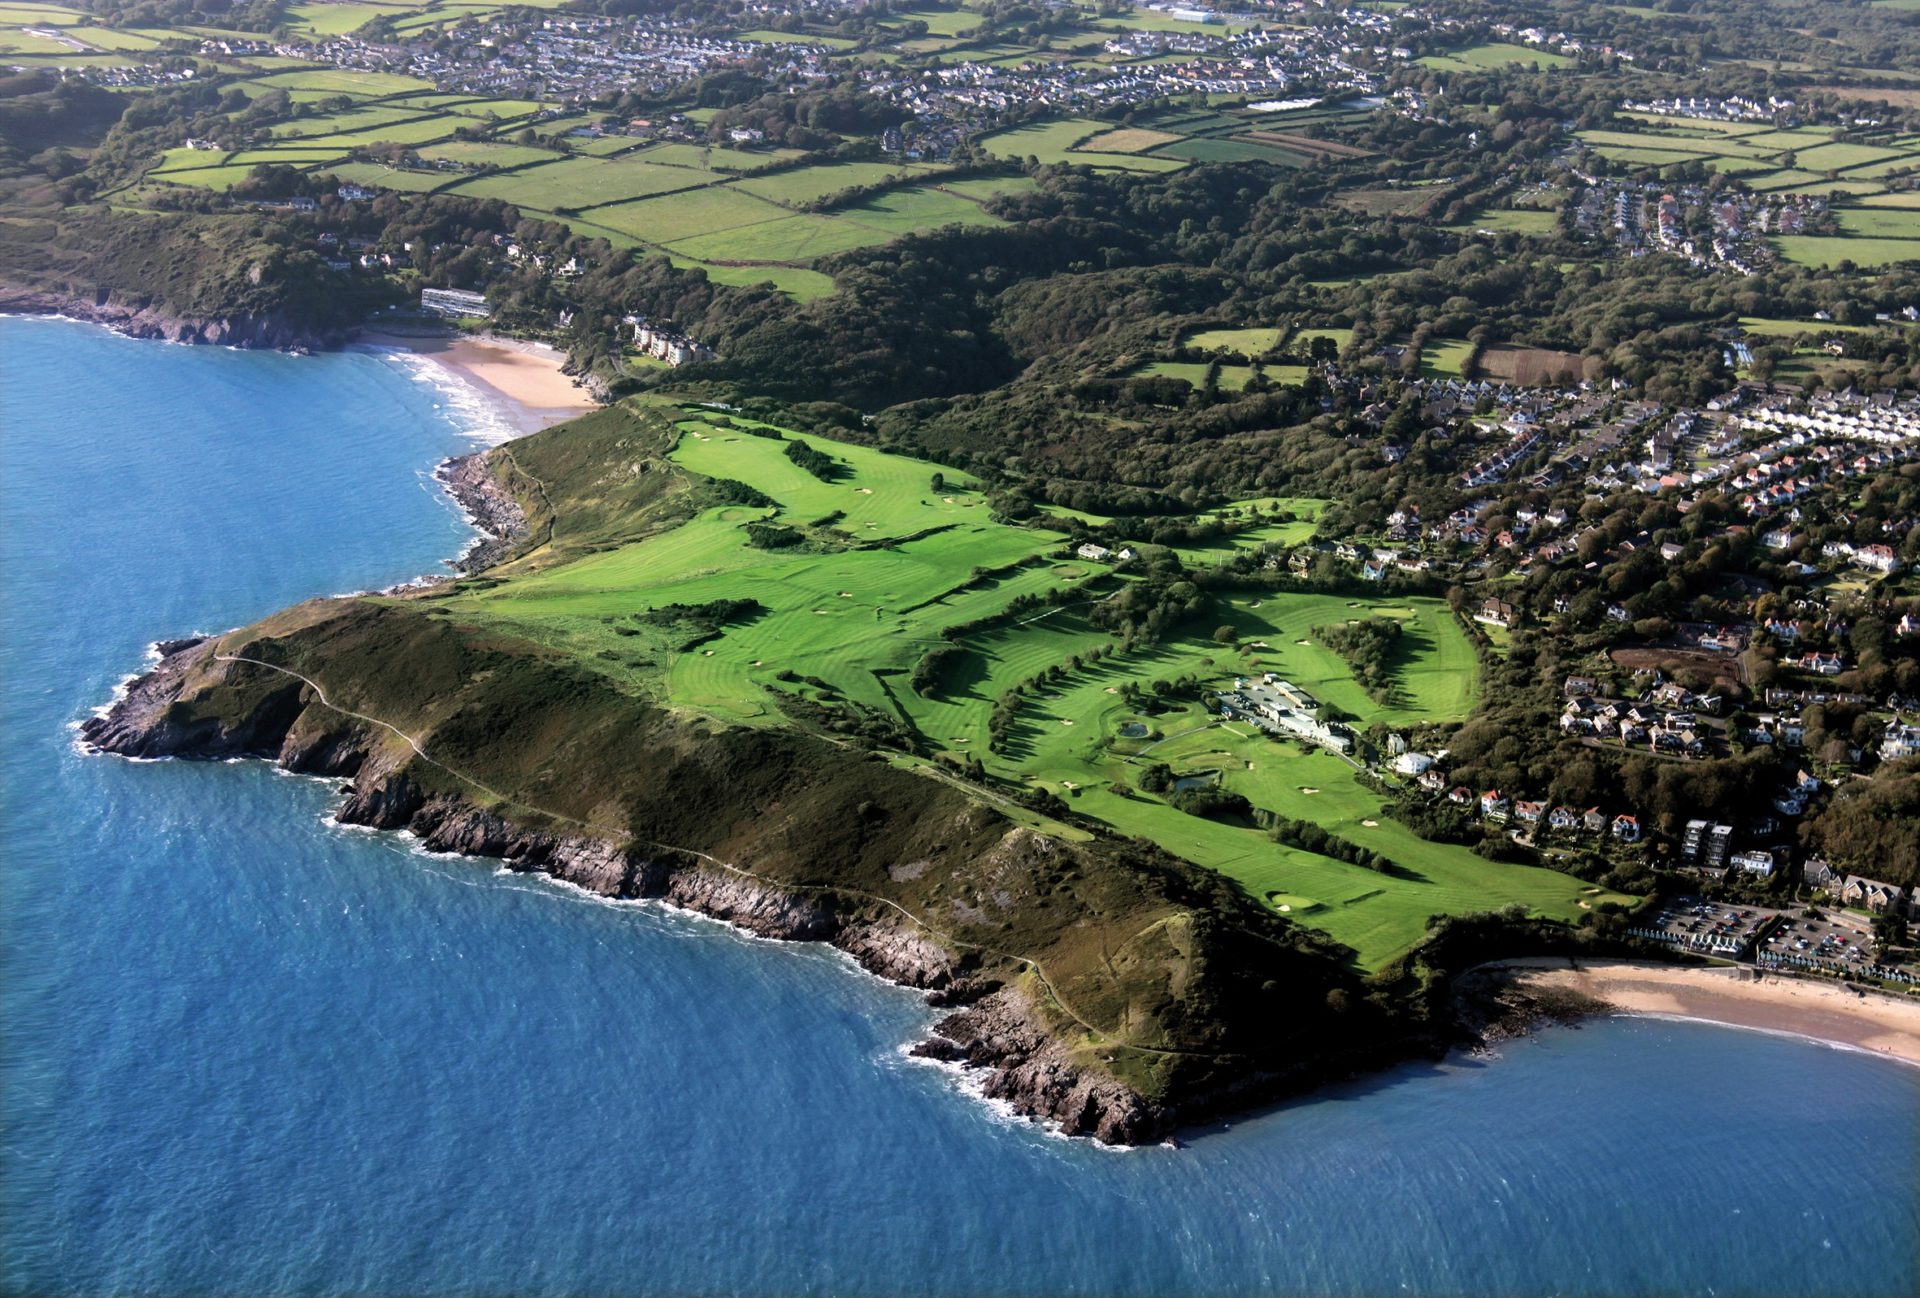 Bird's Eye View of Langland Bay Golf Club